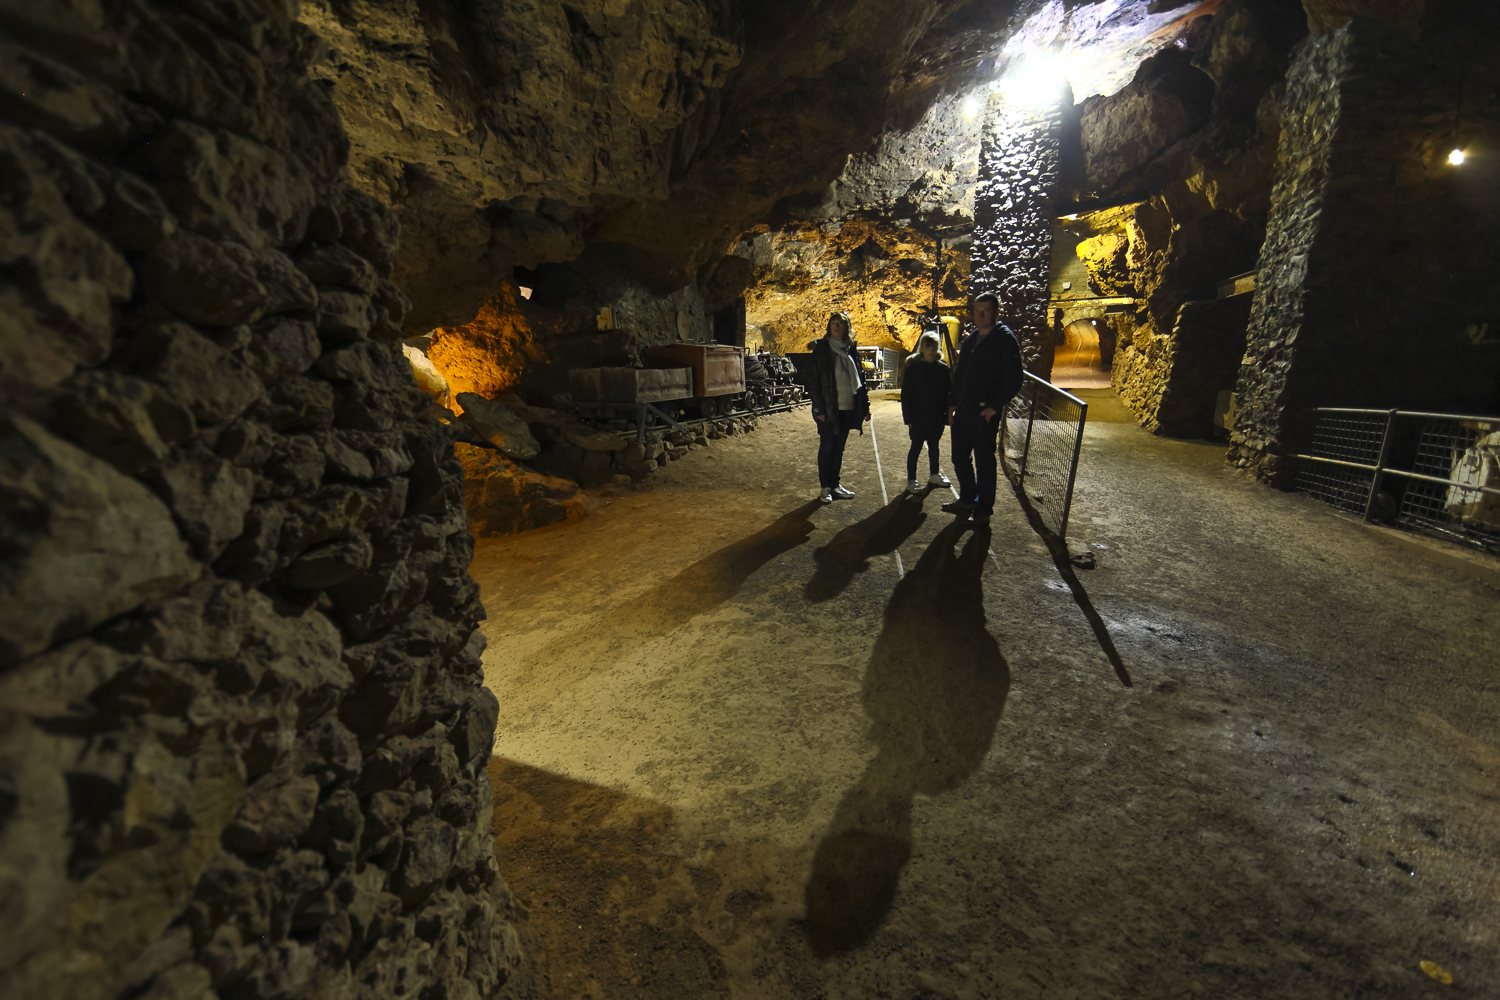 mining, Clearwell Caves, iron, coal, Forest of Dean, cafe